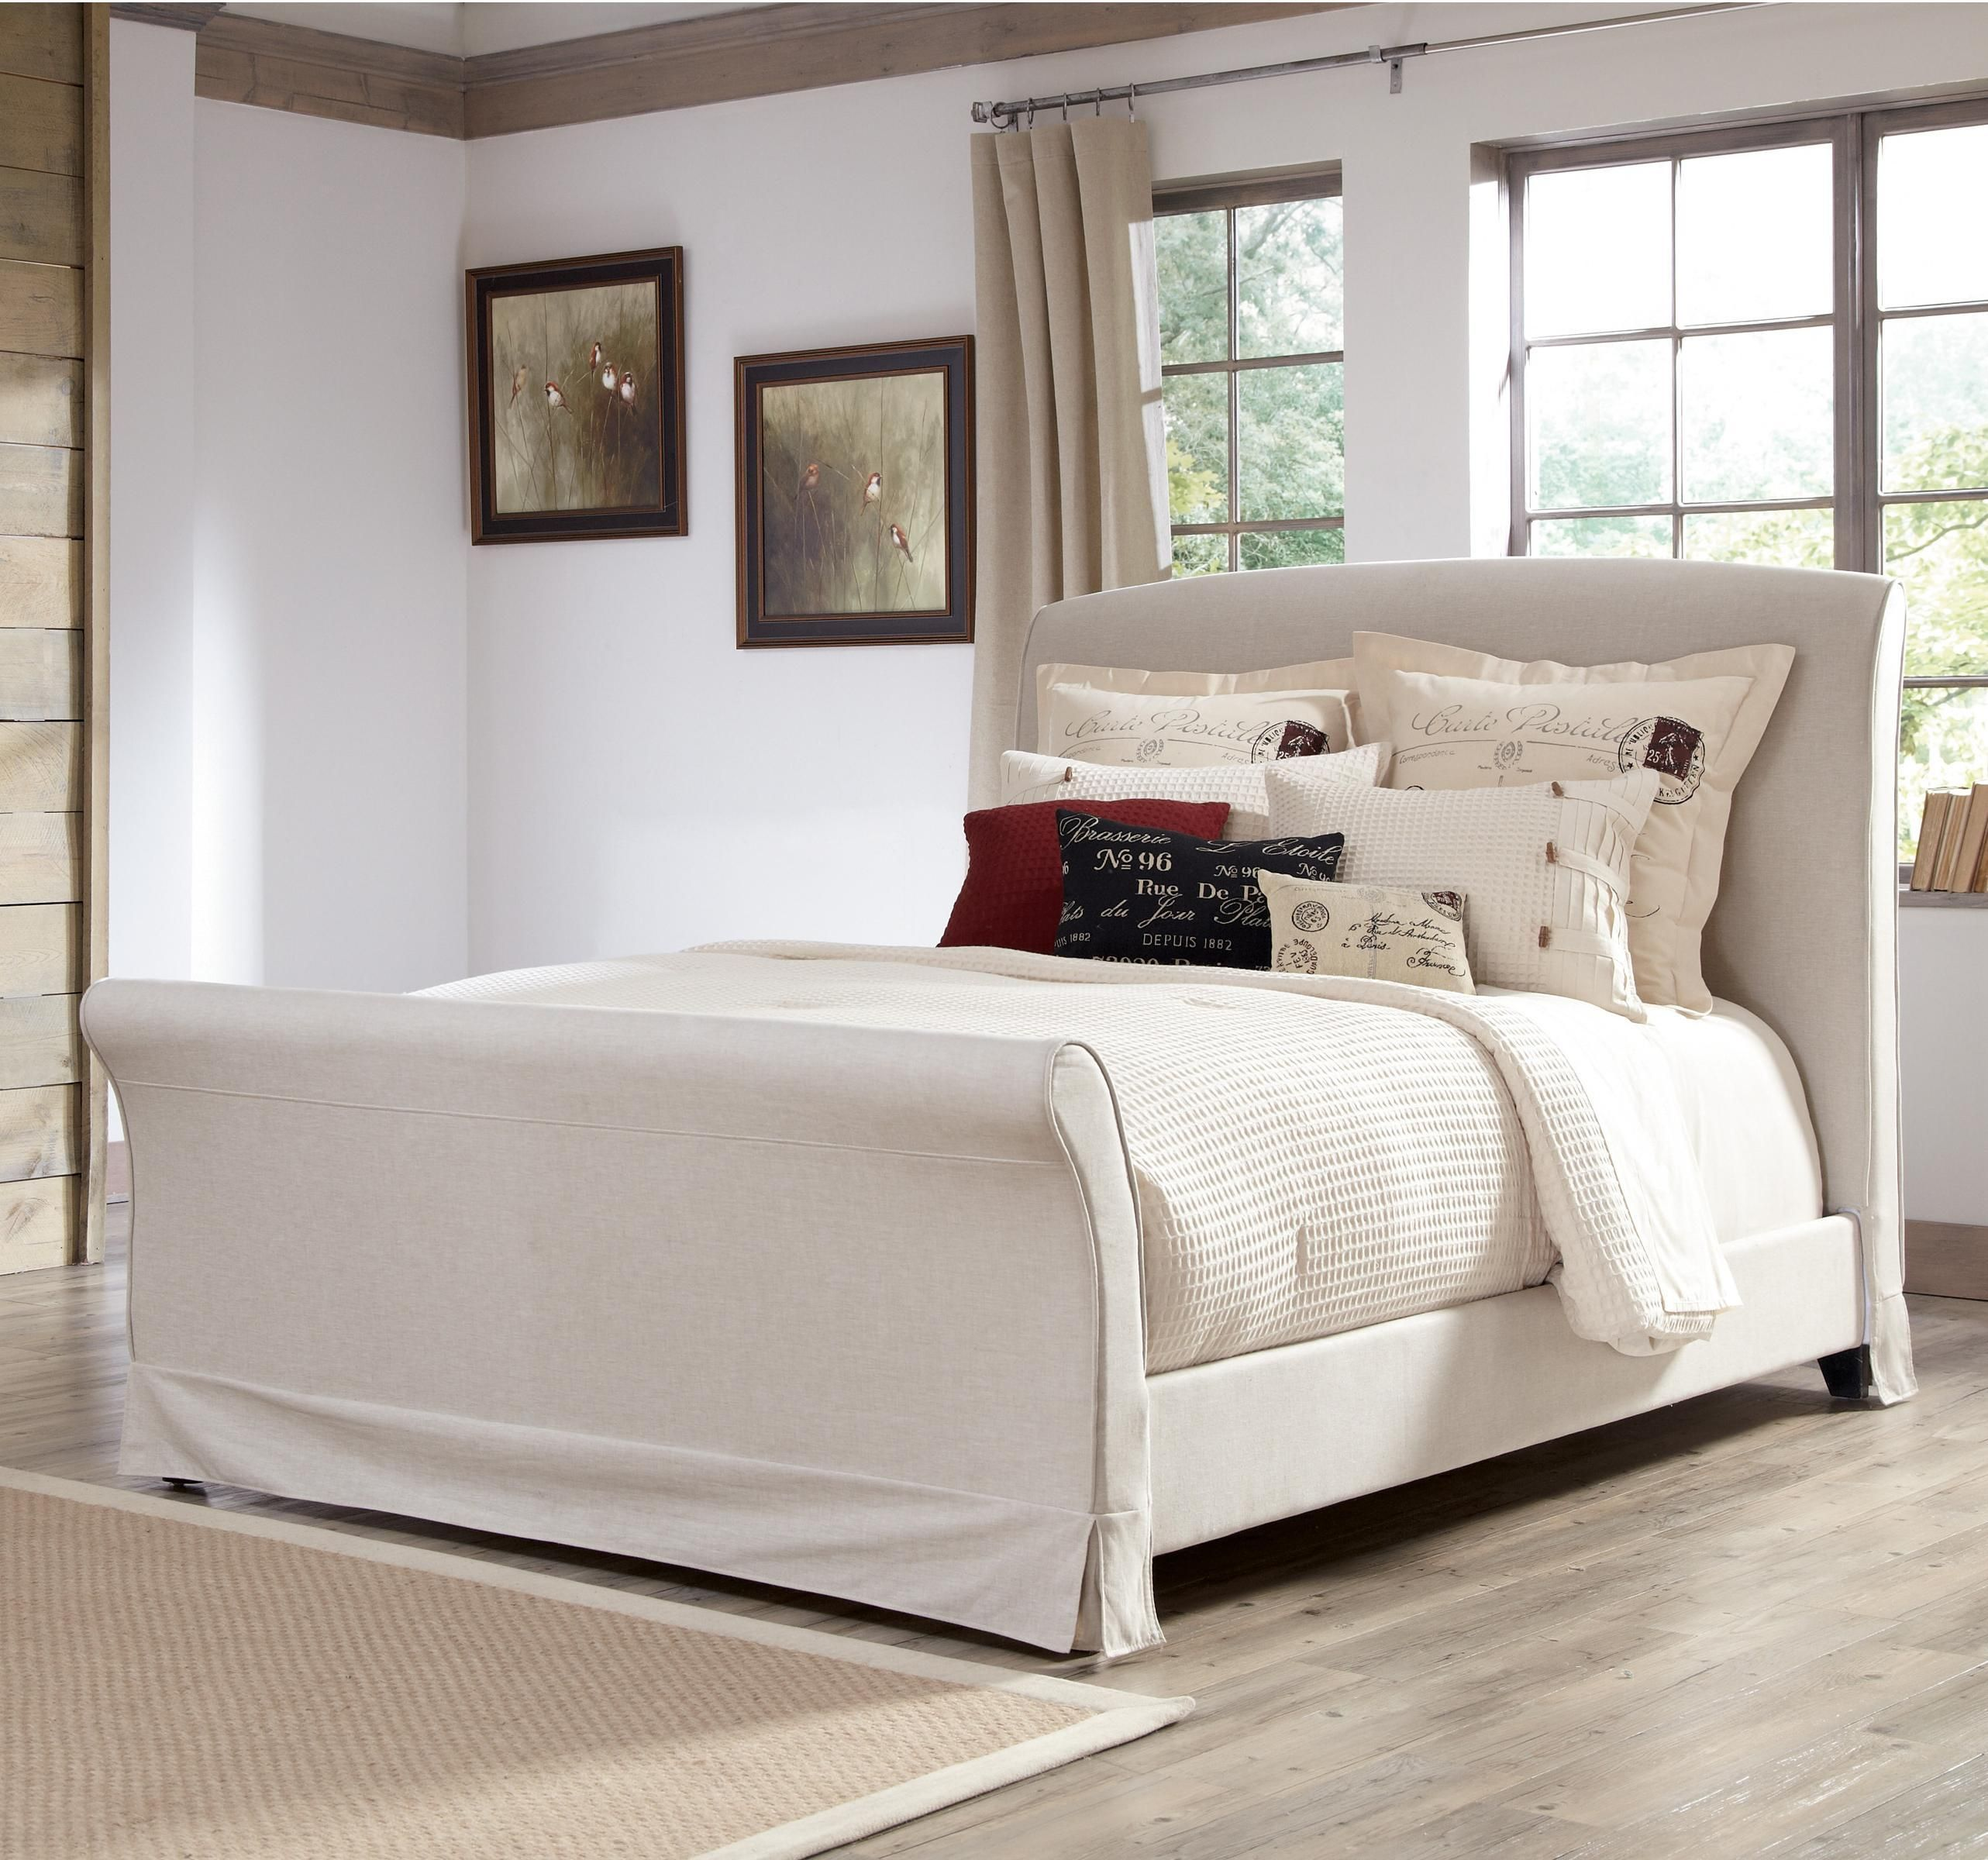 Slipcover for a sleigh bed headboard Bedroom decor for